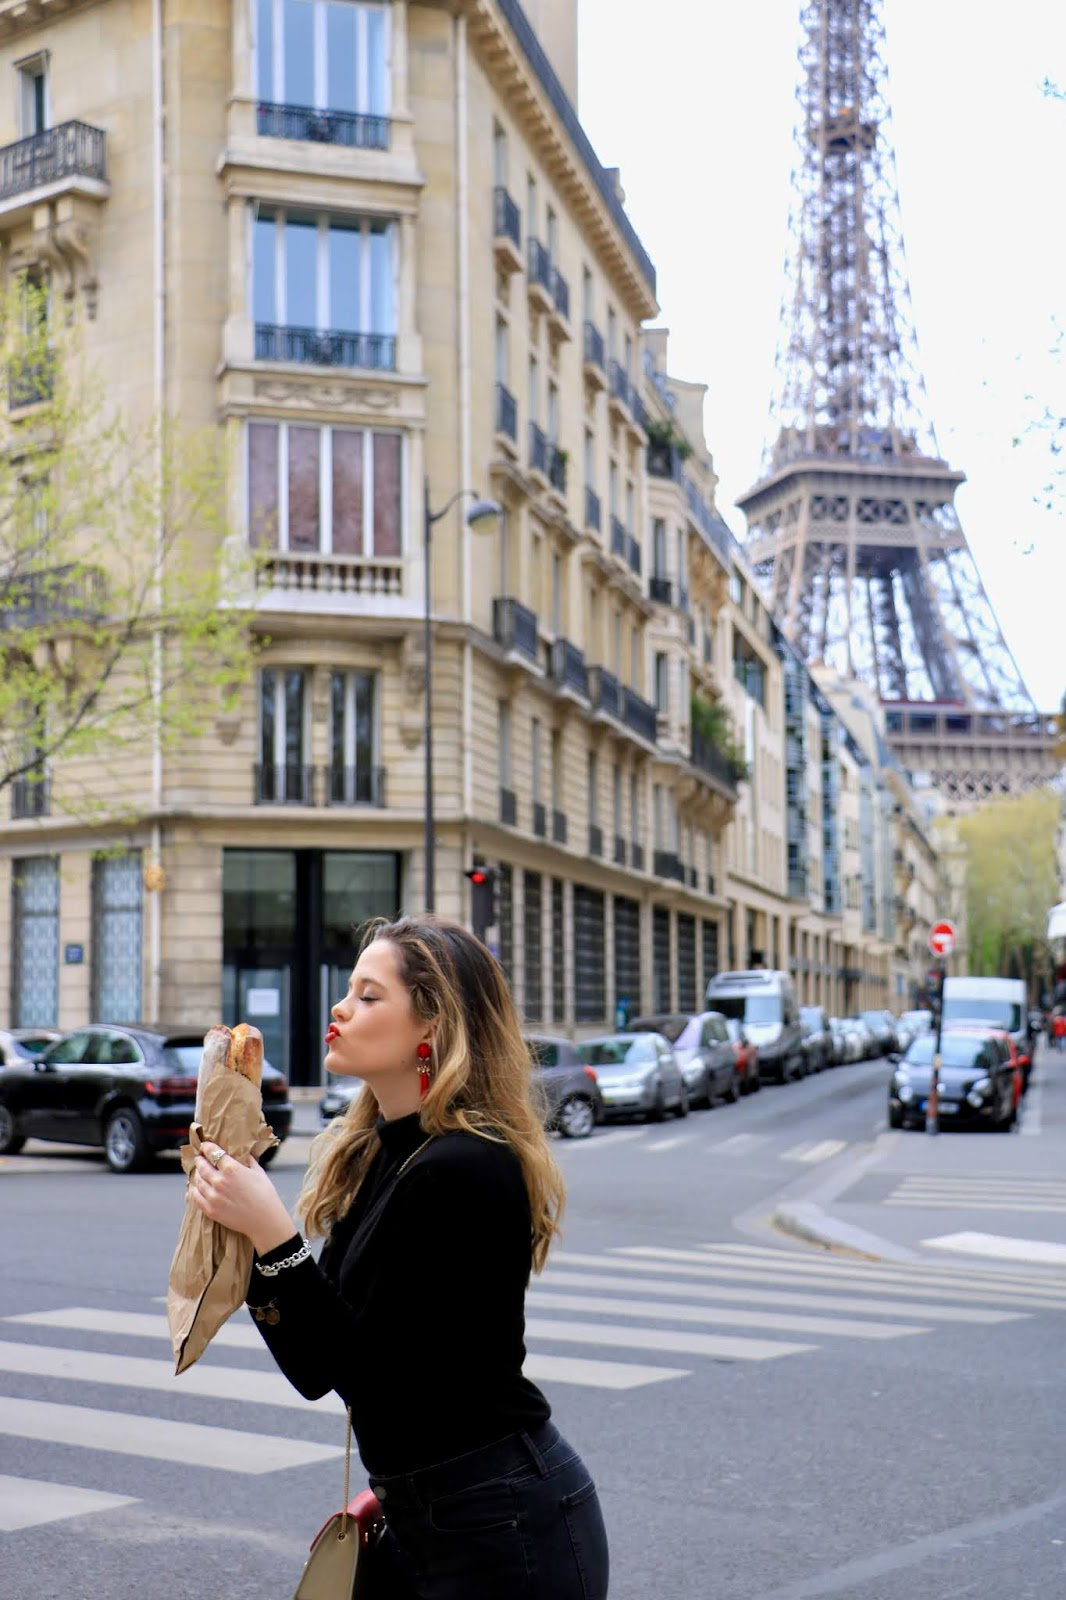 Paris long weekend ideas